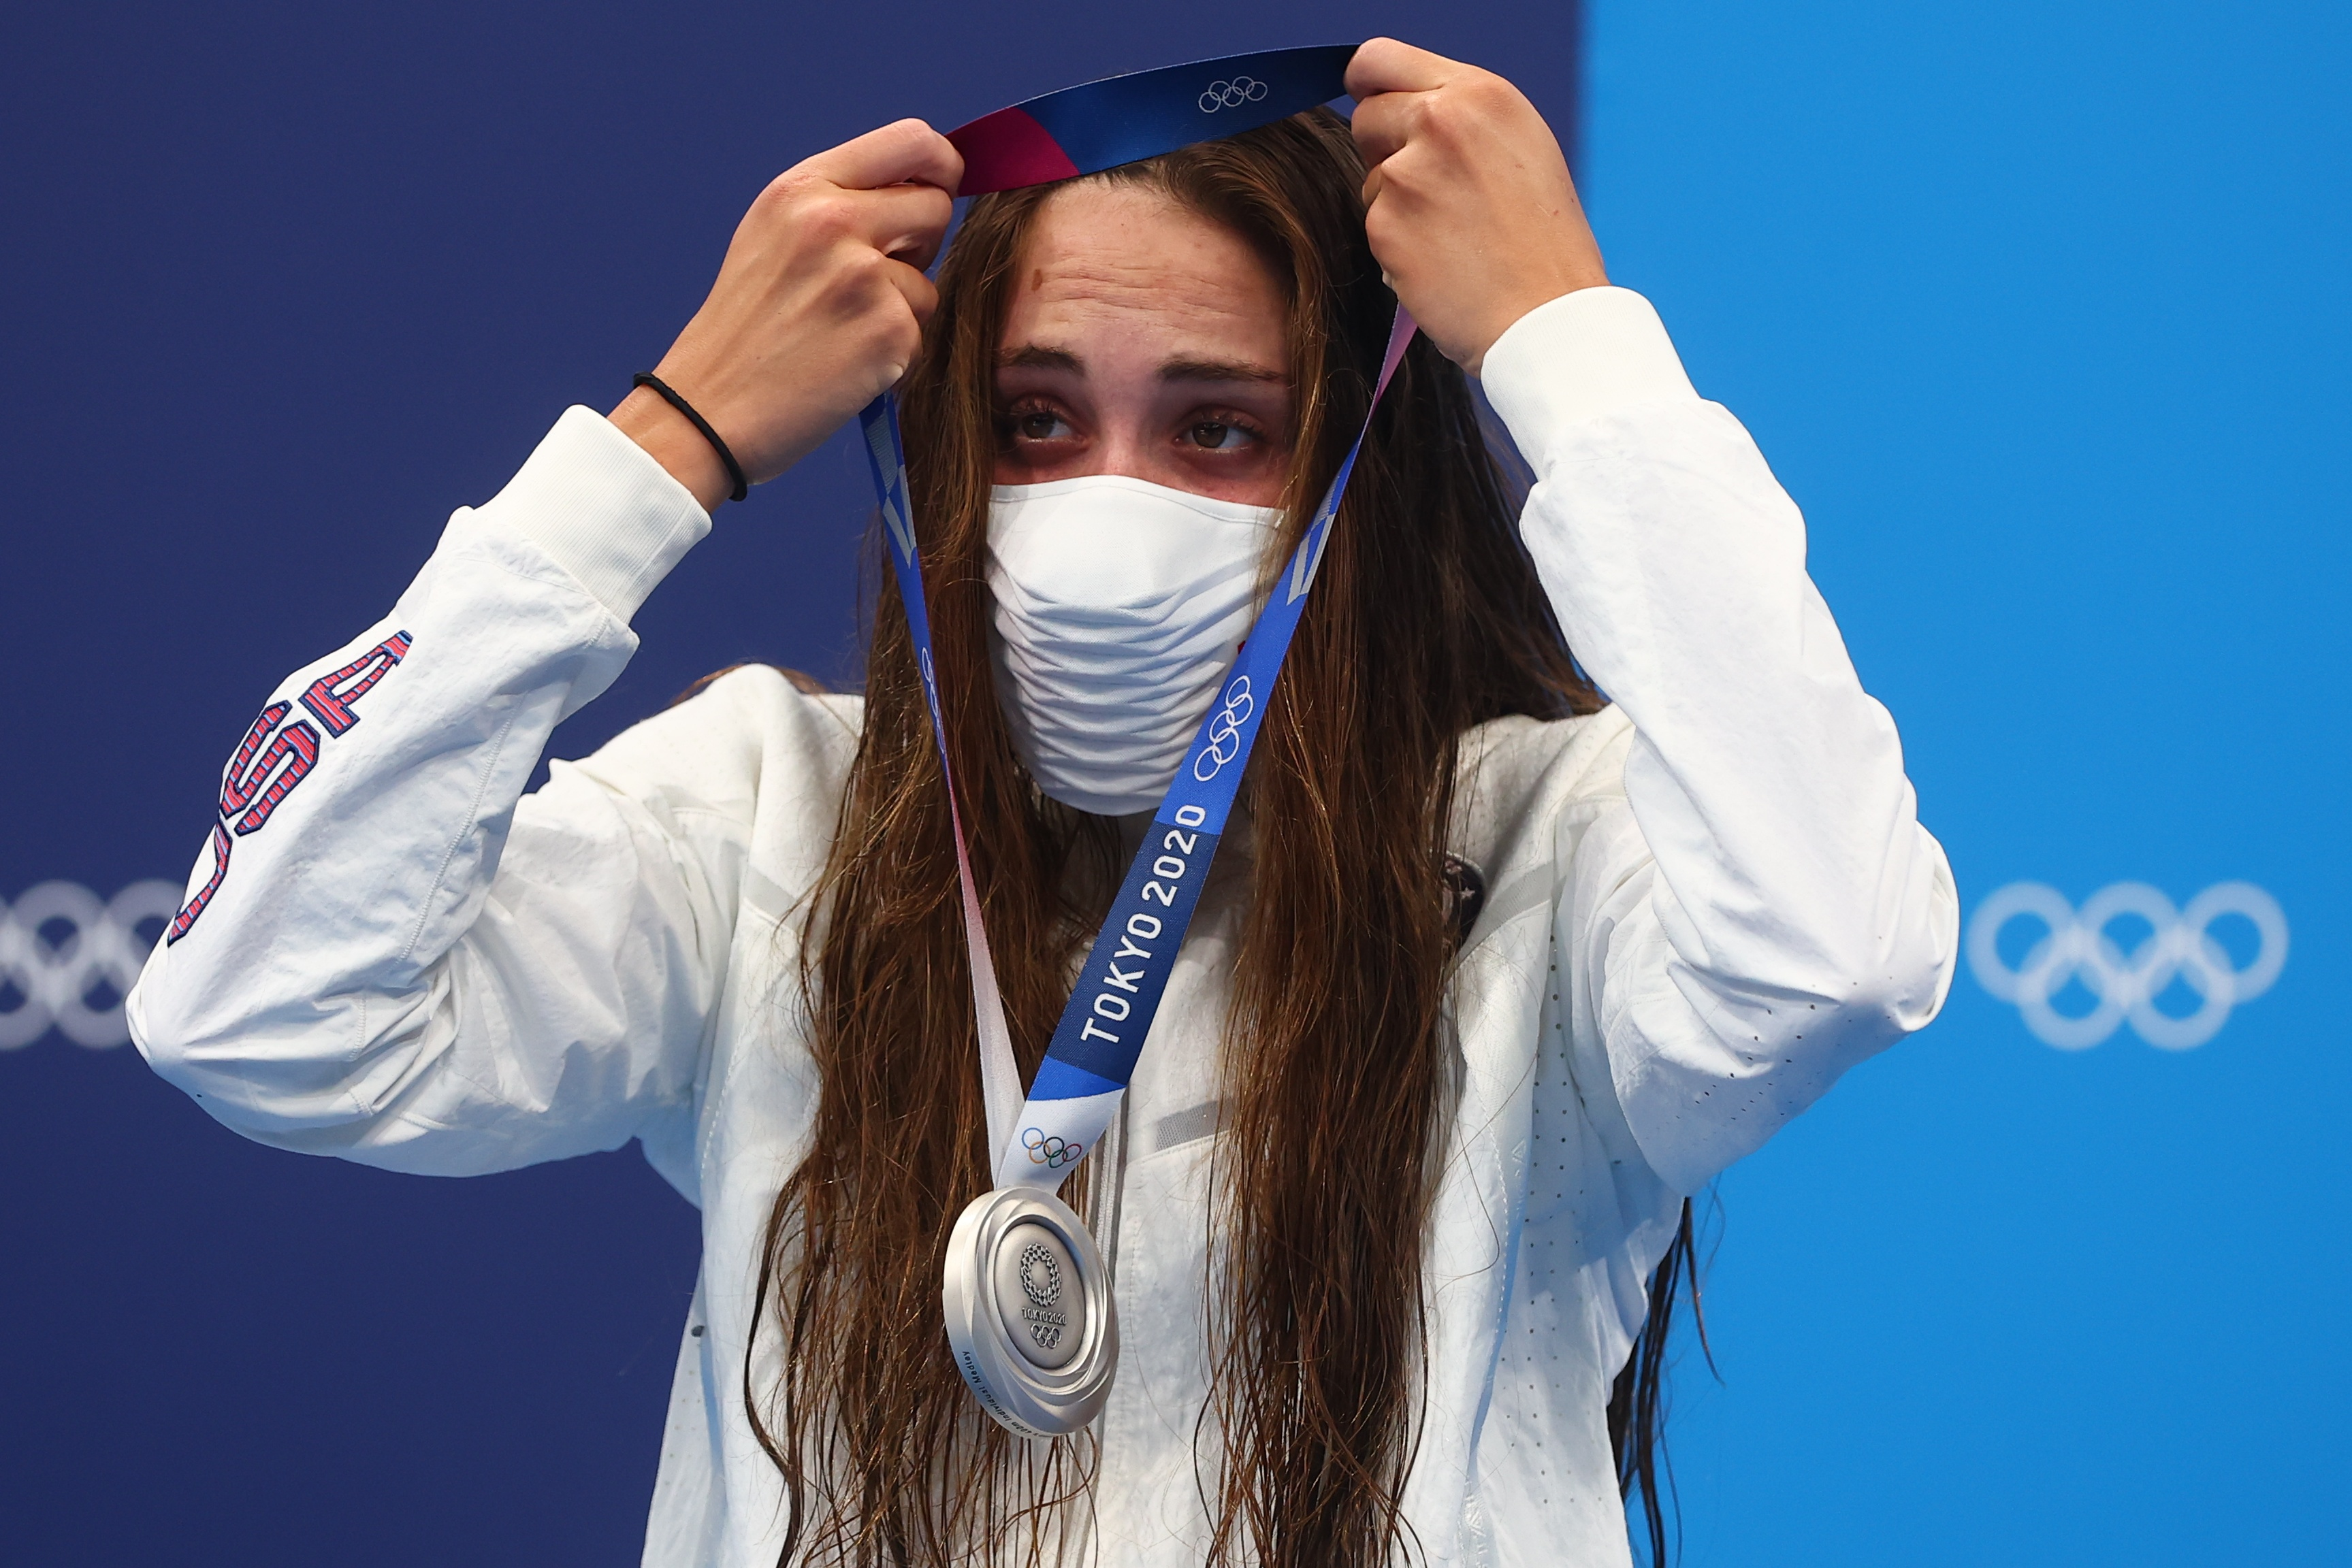 Tokyo 2020 Olympics - Swimming - Women's 400m Individual Medley - Medal Ceremony - Tokyo Aquatics Centre - Tokyo, Japan - July 25, 2021. Silver medalist Emma Weyant of the United States wears a face mask on the podium REUTERS/Kai Pfaffenbach